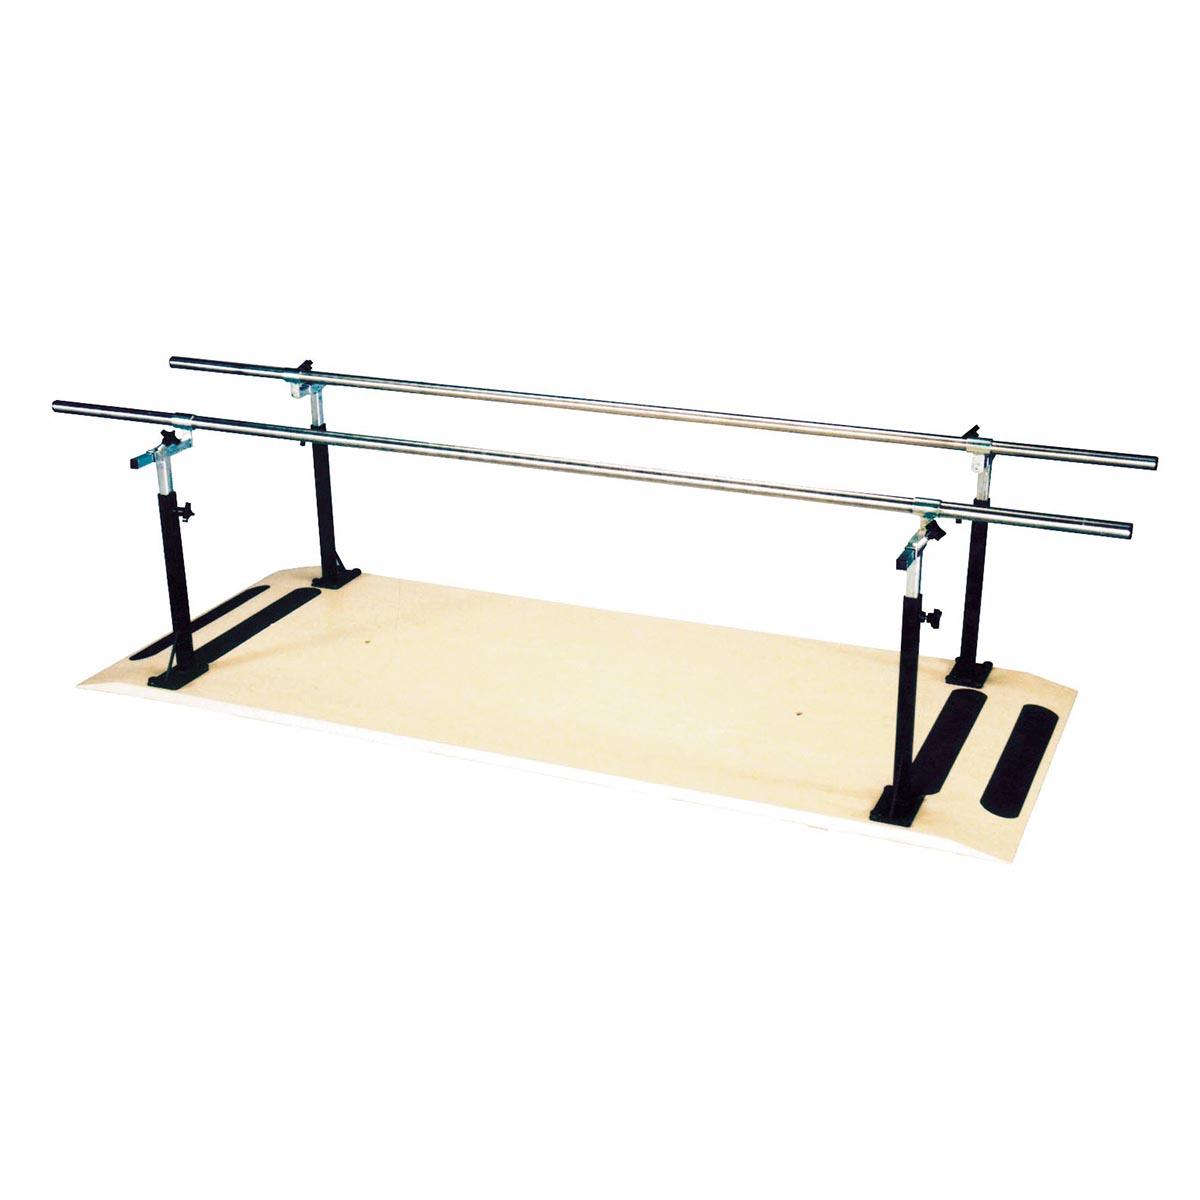 Platform Mounted Parallel Bars Parallel Bars